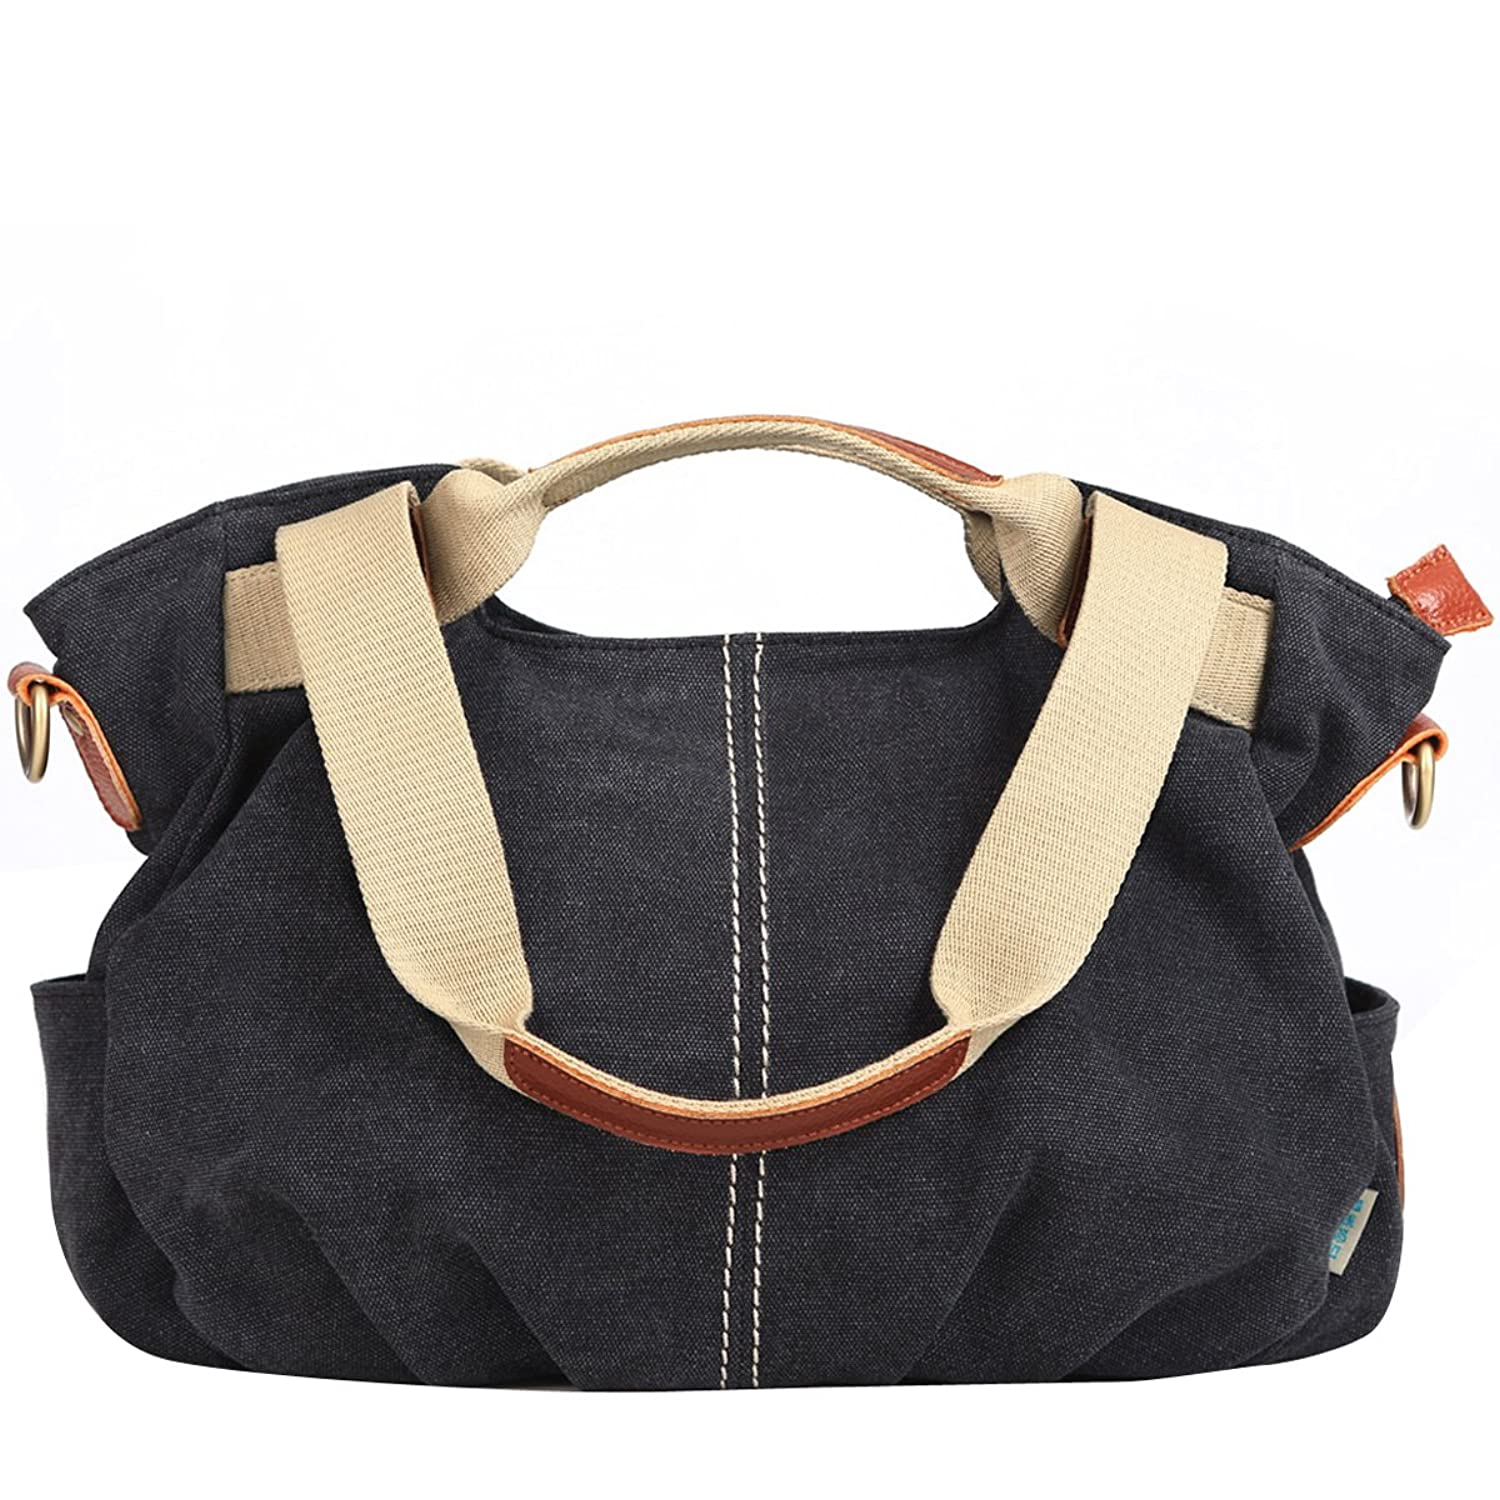 Eshow Women's Casual Canvas Hobo Shoulder Bag, Black: Handbags ...